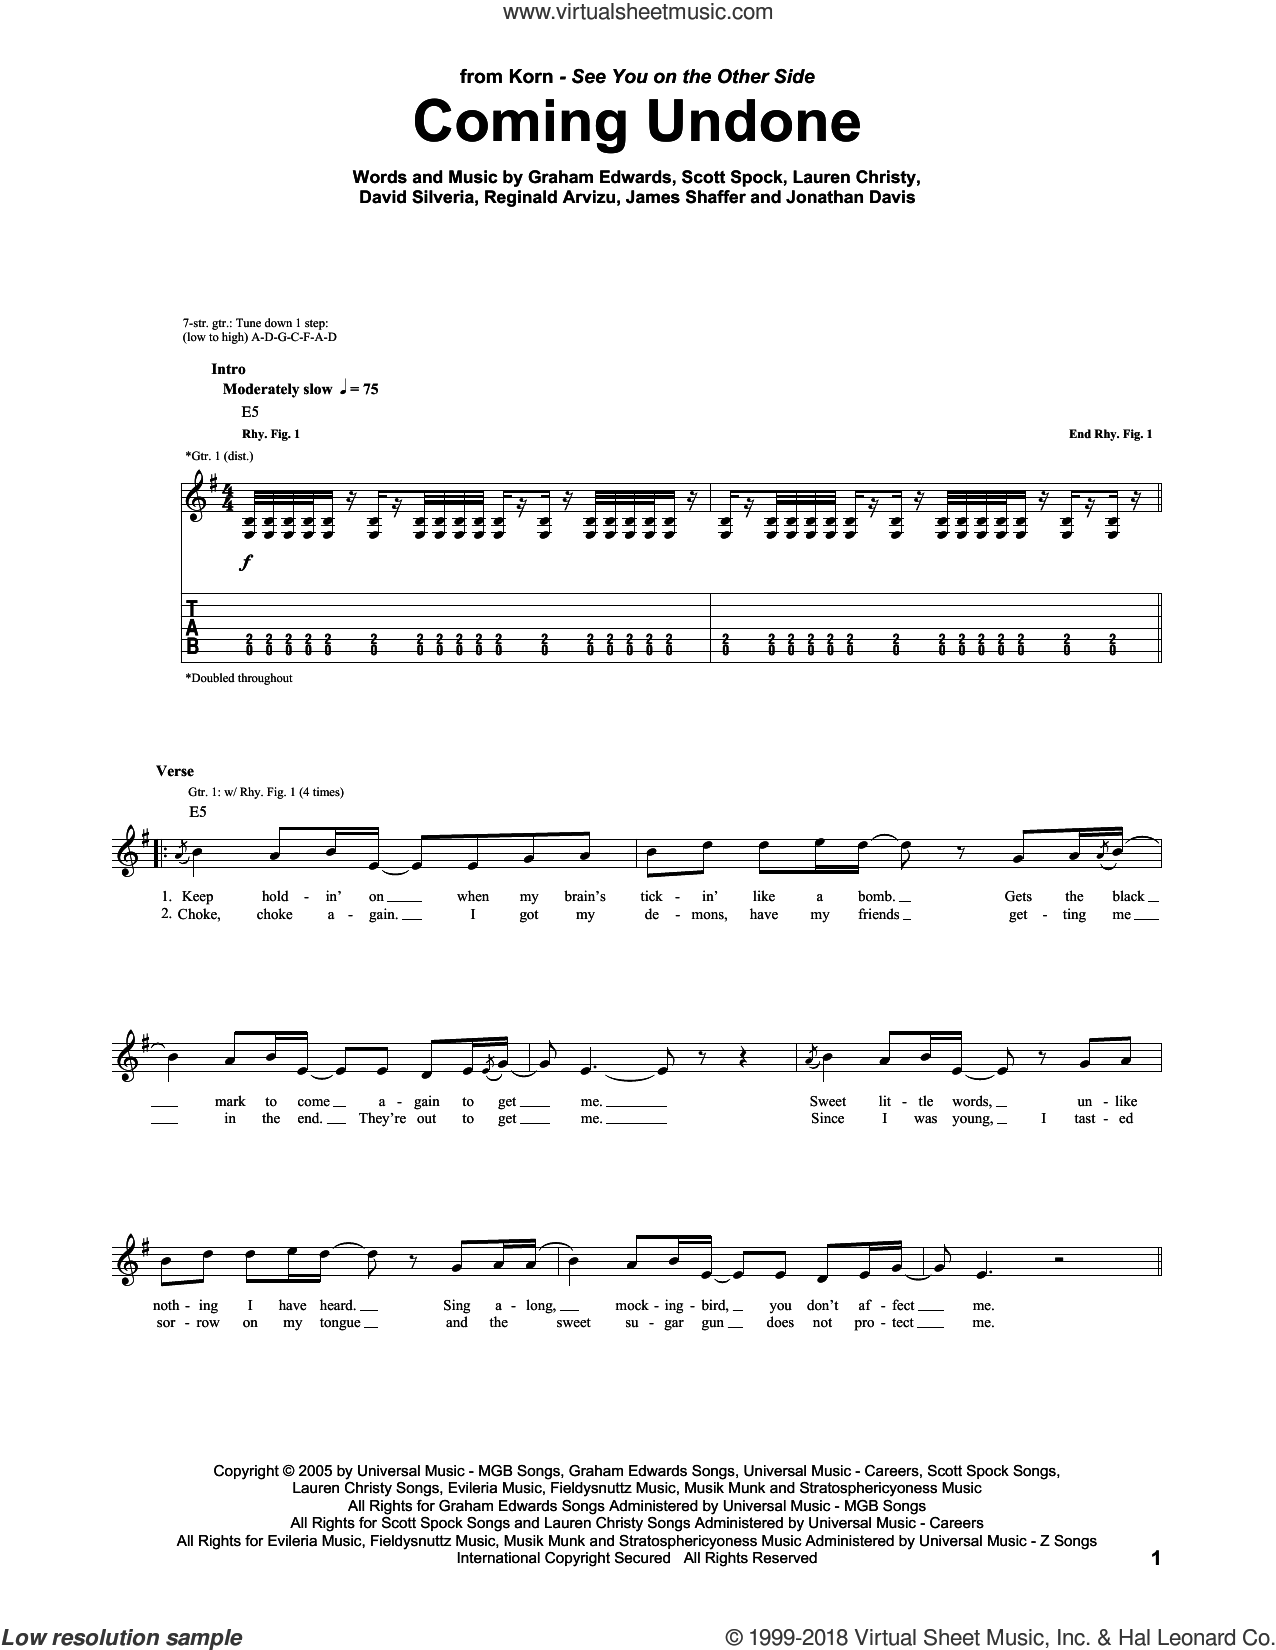 Coming Undone sheet music for guitar (tablature) by Korn, David Randall Silveria, Graham Edwards, James Shaffer, Jonathan Davis, Lauren Christy, Reginald Arvizu and Scott Spock, intermediate. Score Image Preview.